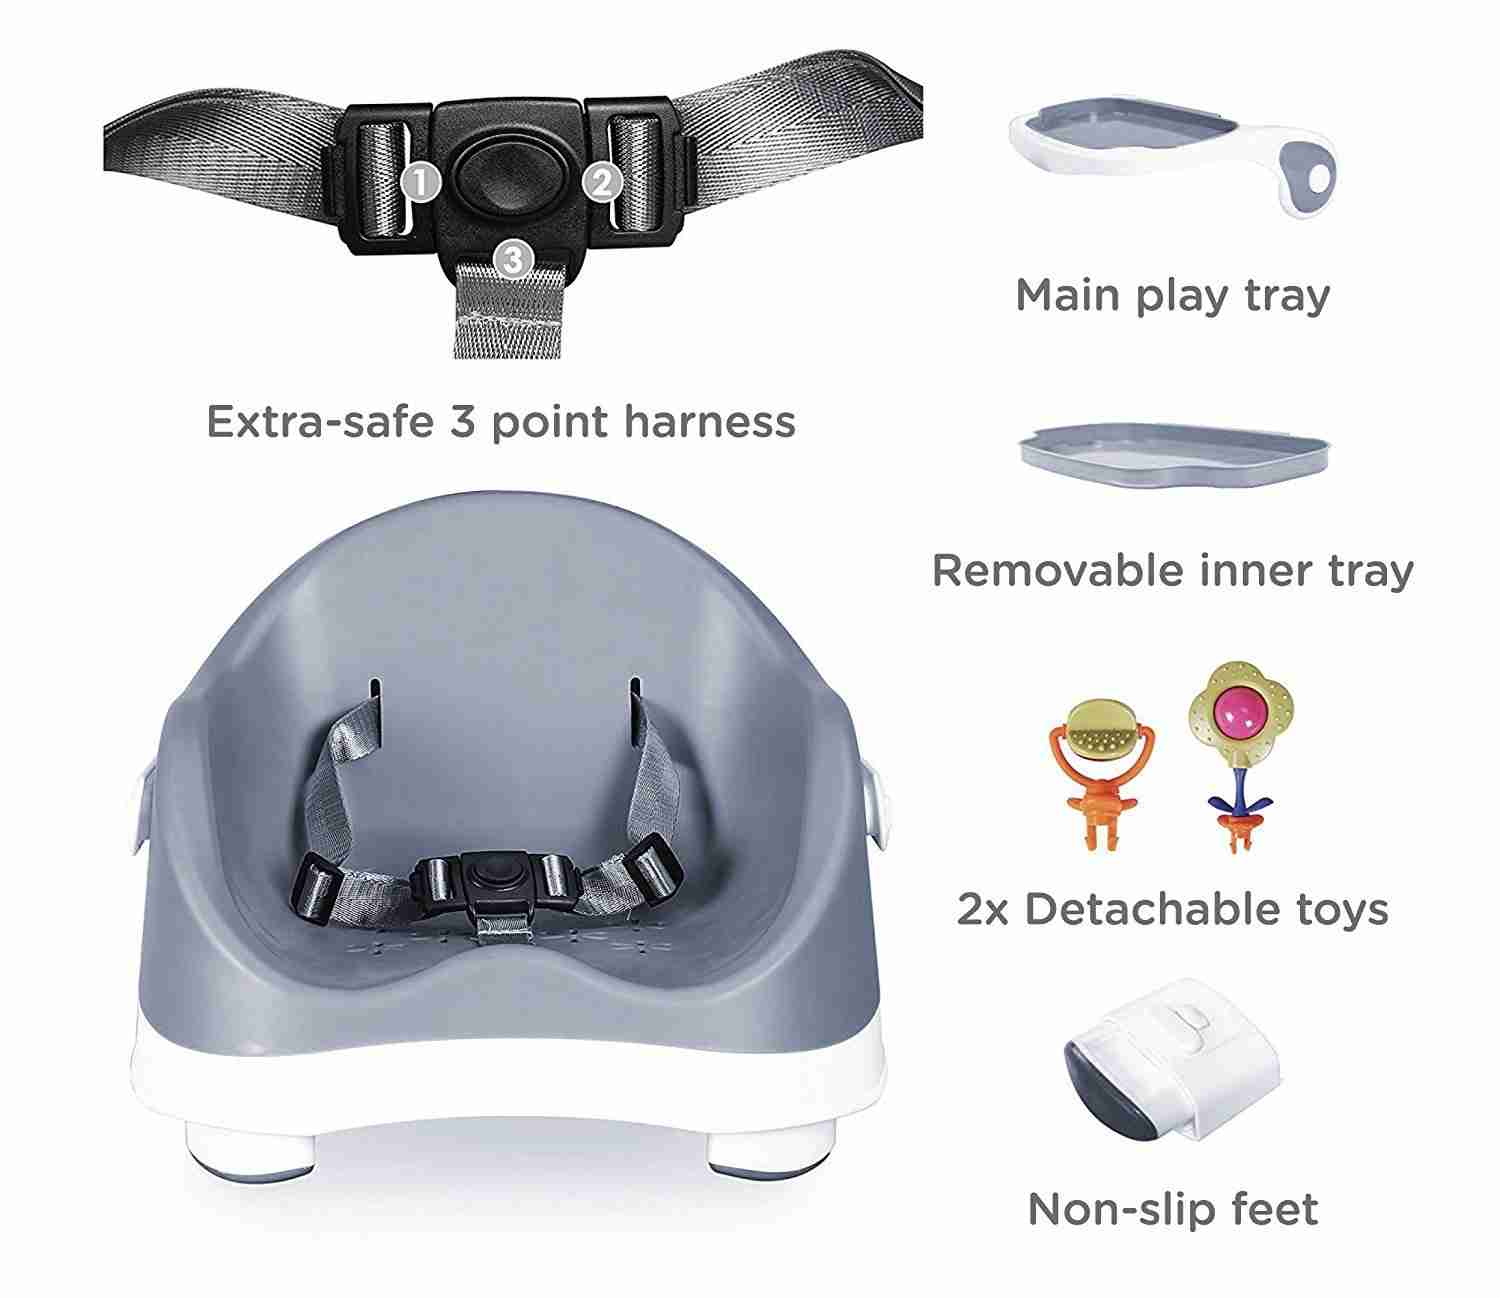 What's included in the Venture Q-Fix portable travel high chair